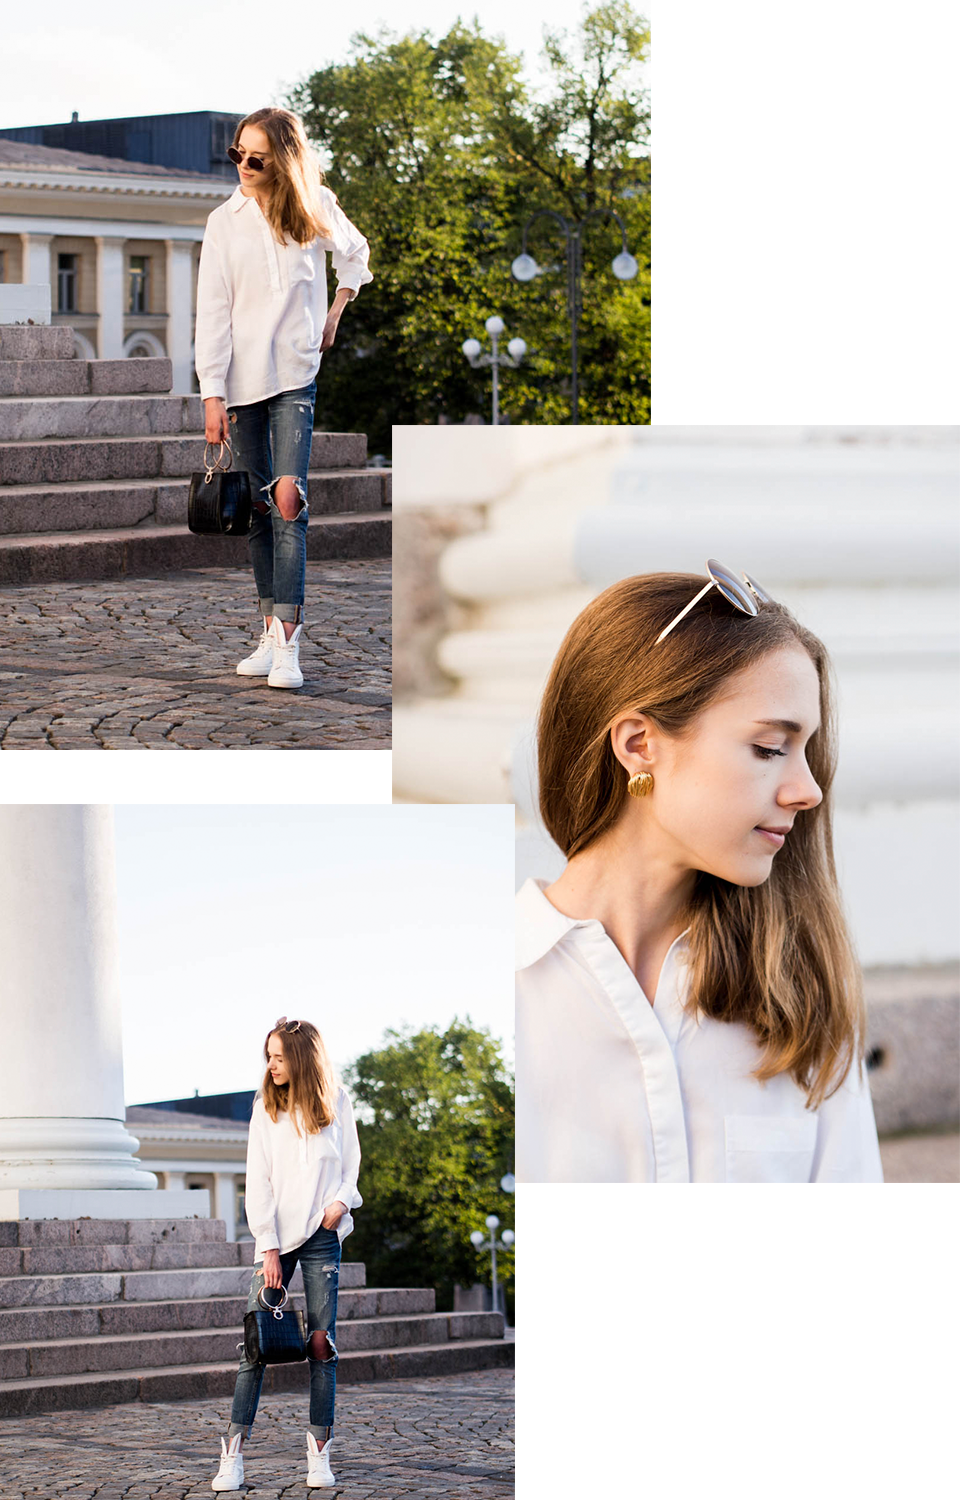 fashion-blogger-outfit-inspiration-white-shirt-blue-denim